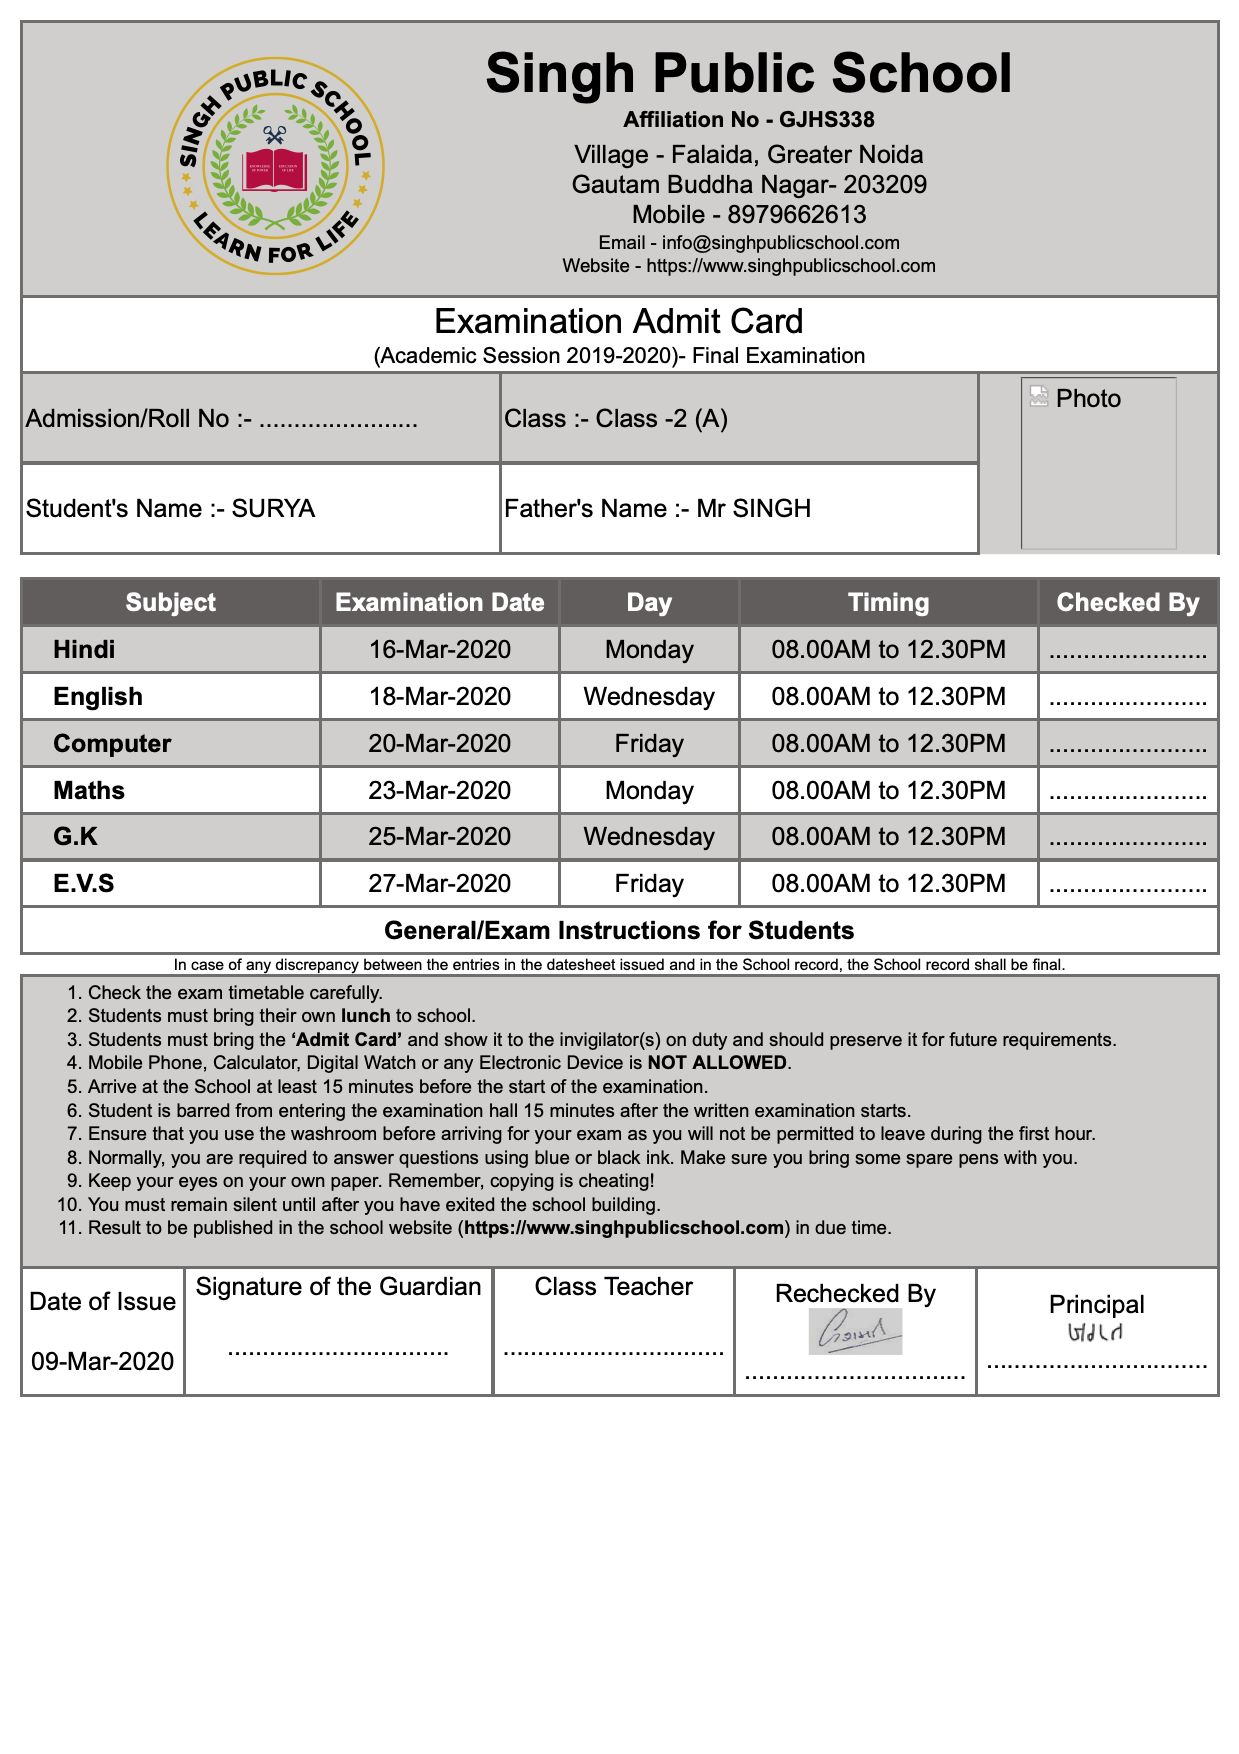 School Admit Card Template Learning For Life Templates Public School